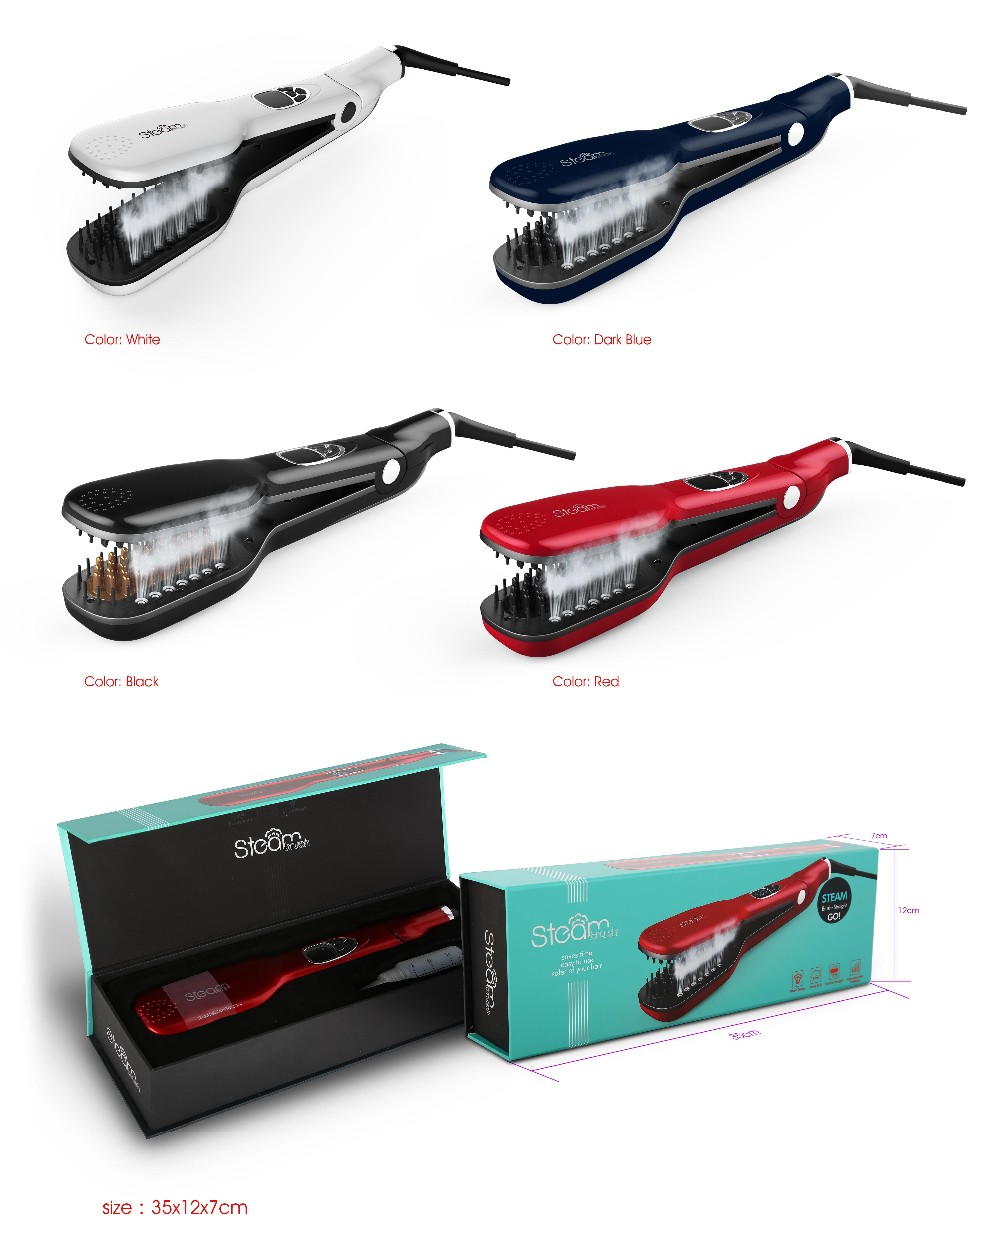 Advanced Steam Comb Hair Flat Iron Straightener Buy Hair